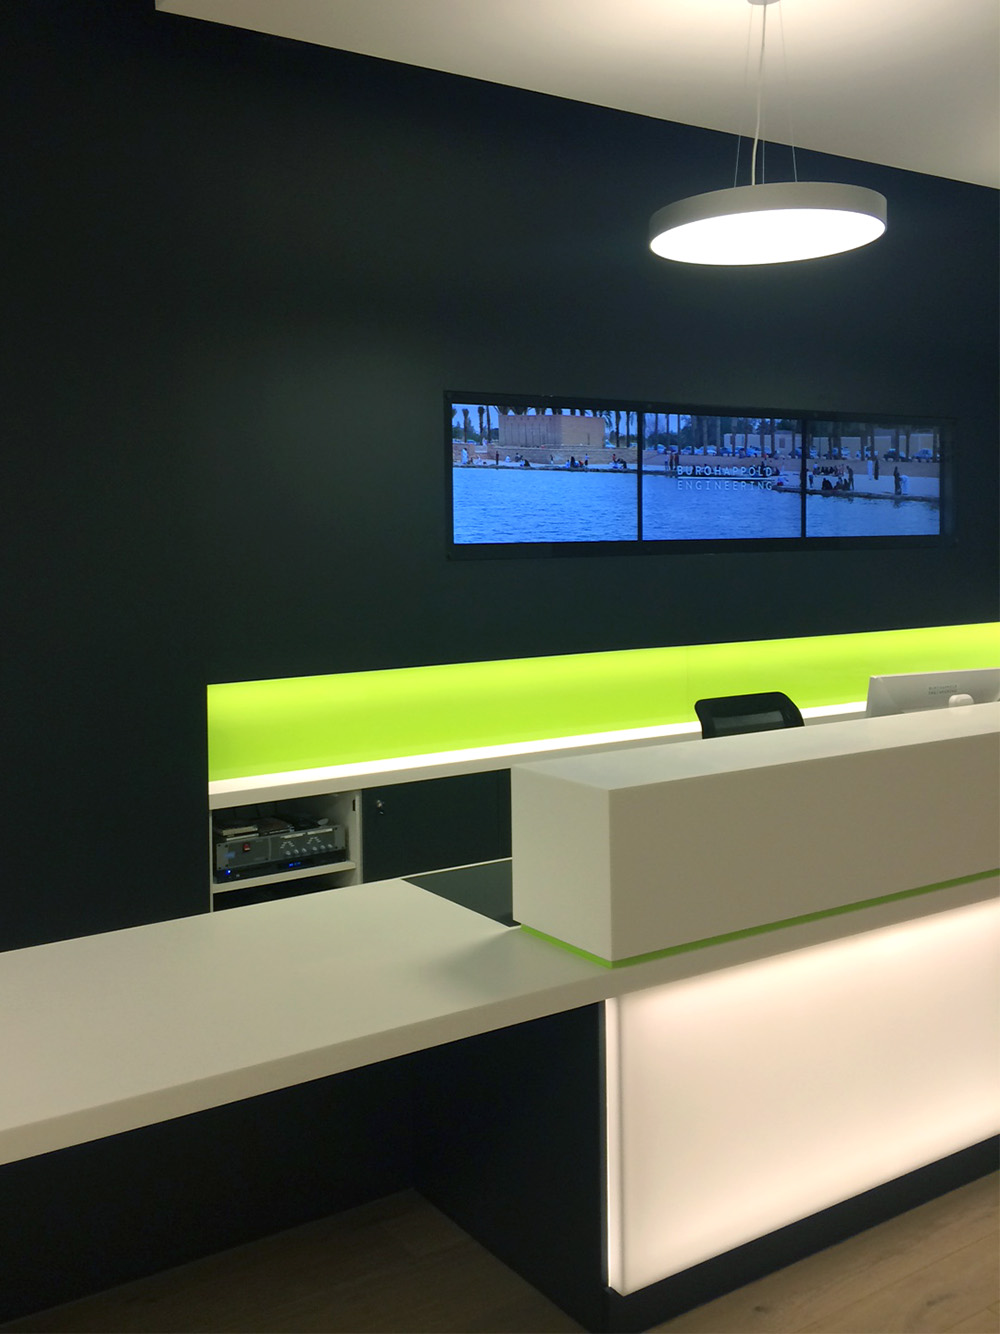 Buro happold offices london design engine architects for Buro service